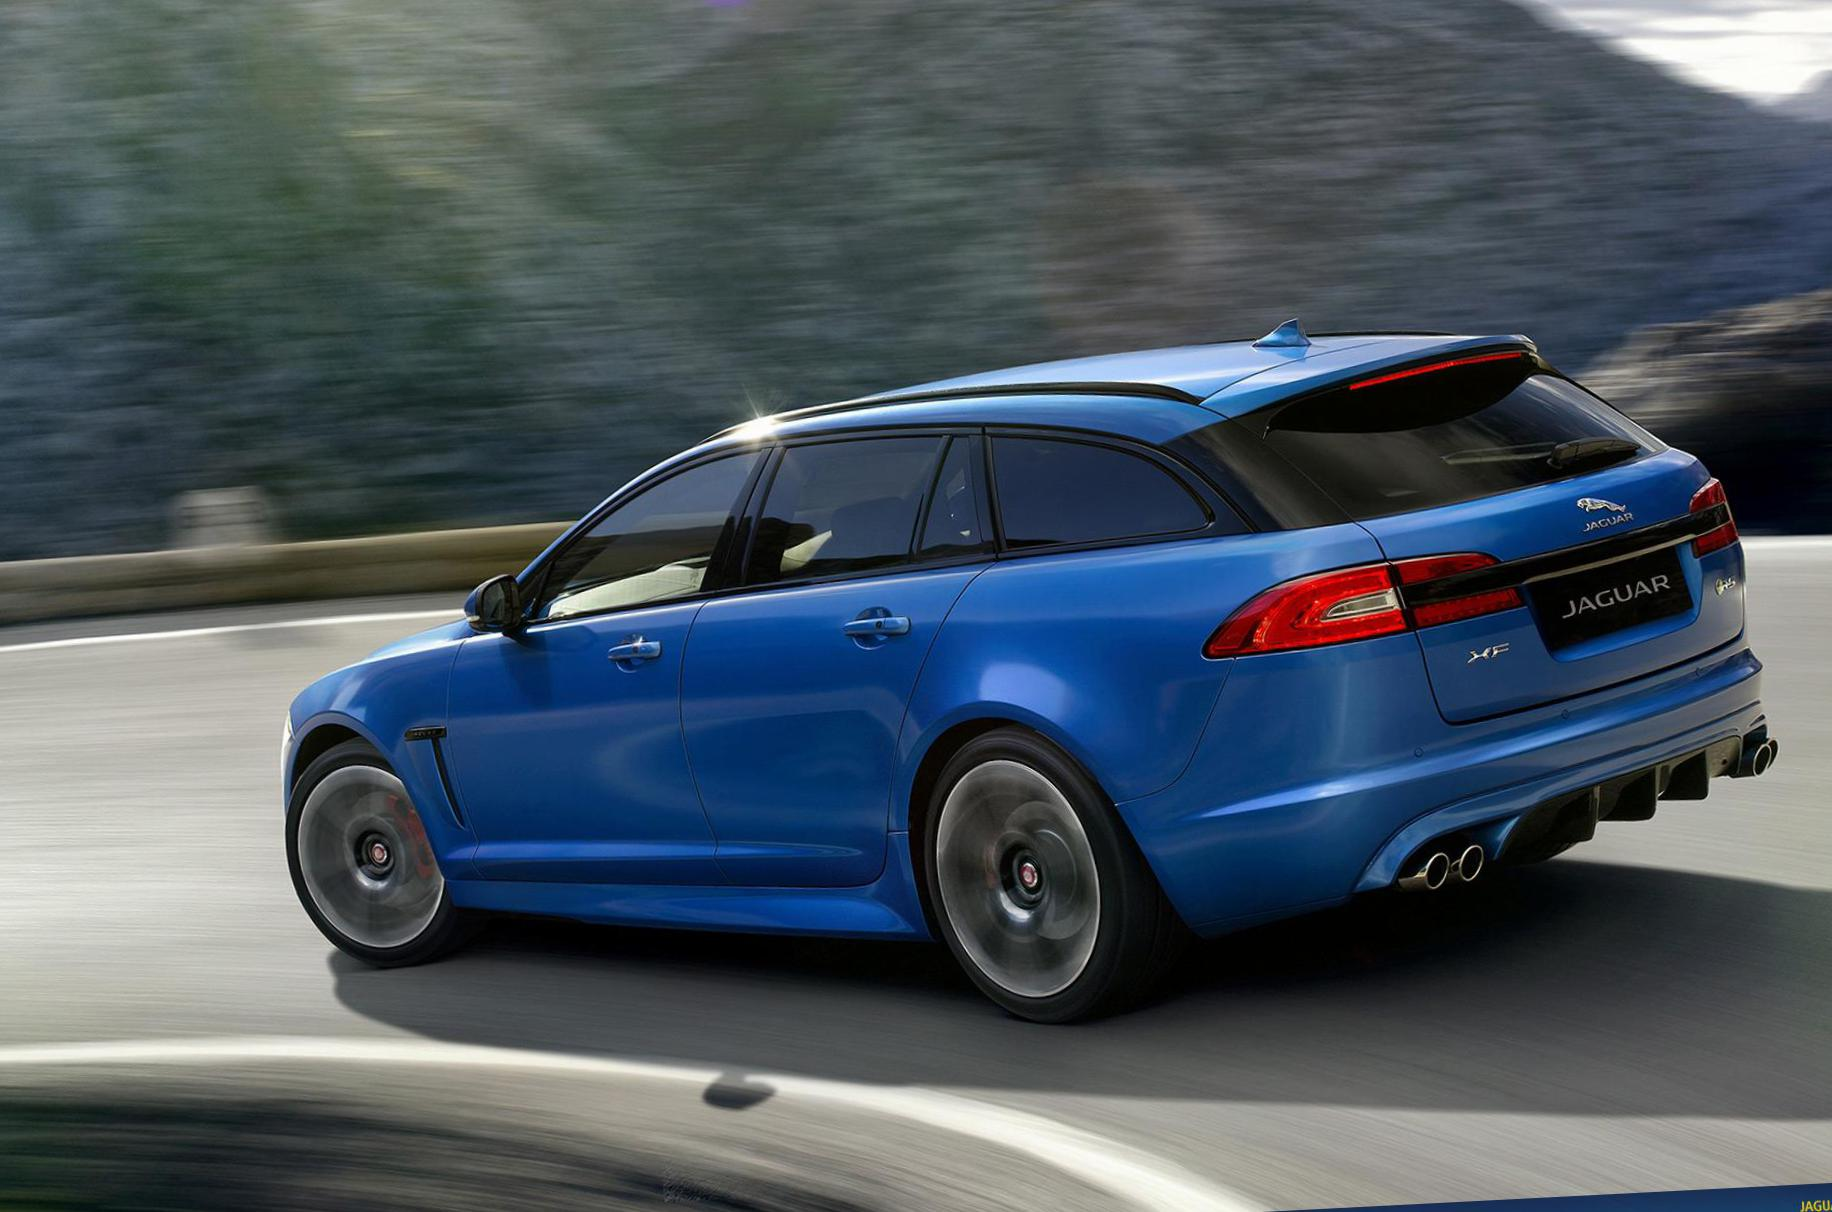 XFR-S Sportbrake Jaguar Specifications minivan